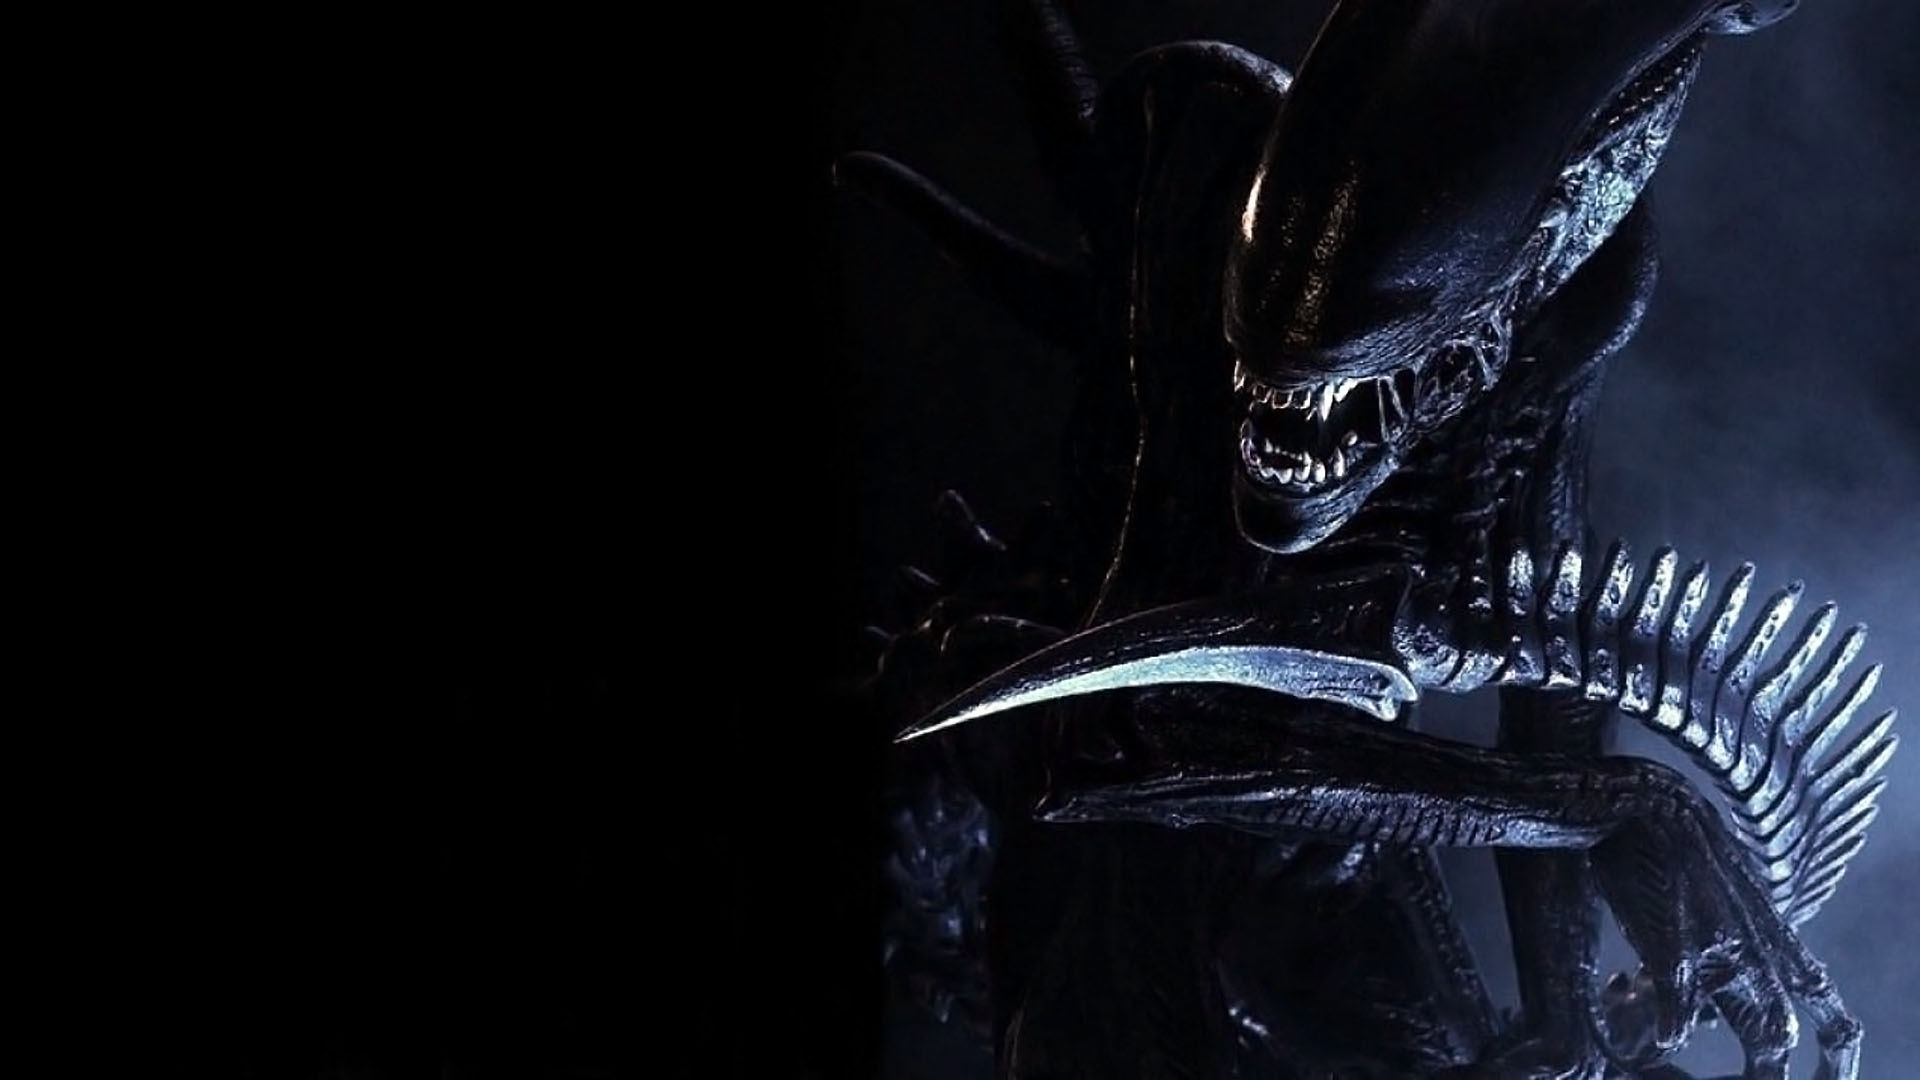 Xenomorph Res: 1920x1080 HD / Size:180kb. Views: 75781